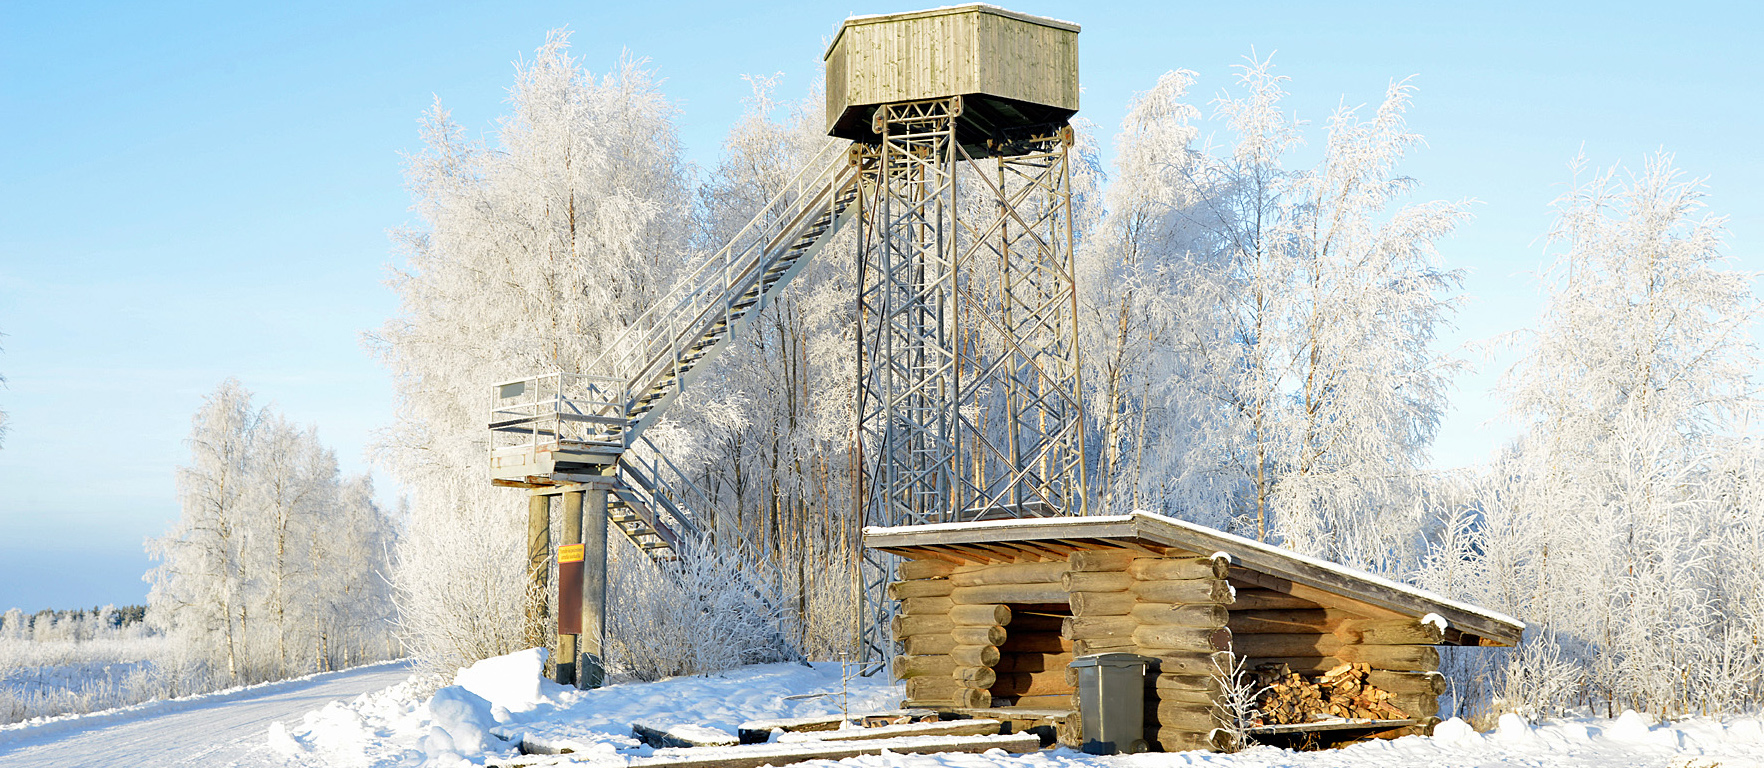 Bird watching tower and lean-to shelter in winter landscape